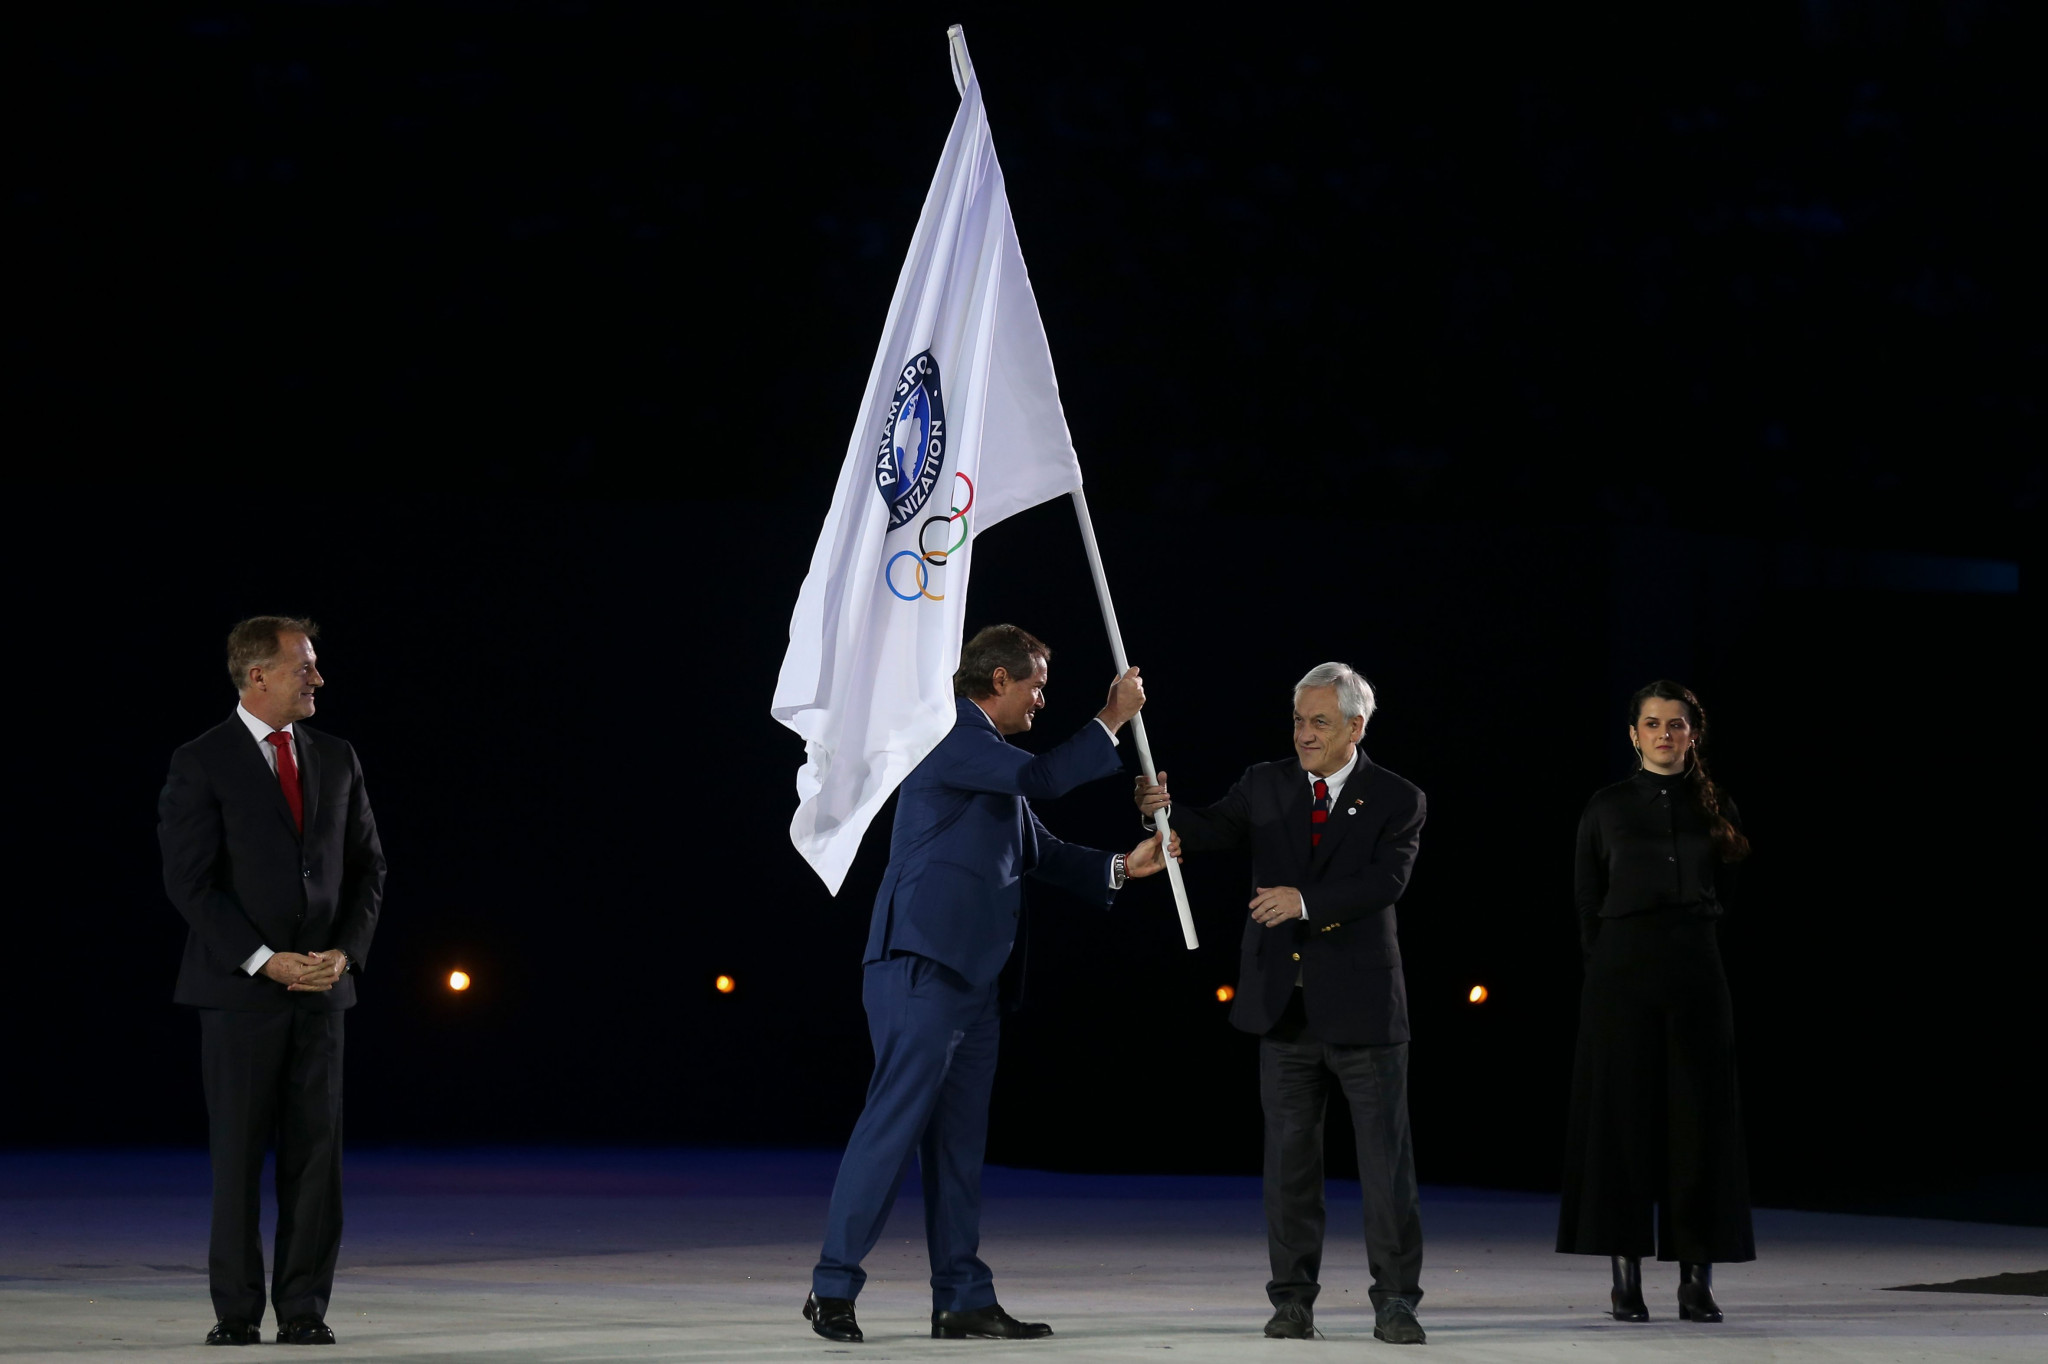 Neven Ilic, President of Panam Sports, hands the Pan-Am Games flag to Chilean President Sebastian Pinera in 2019 ©Getty Images